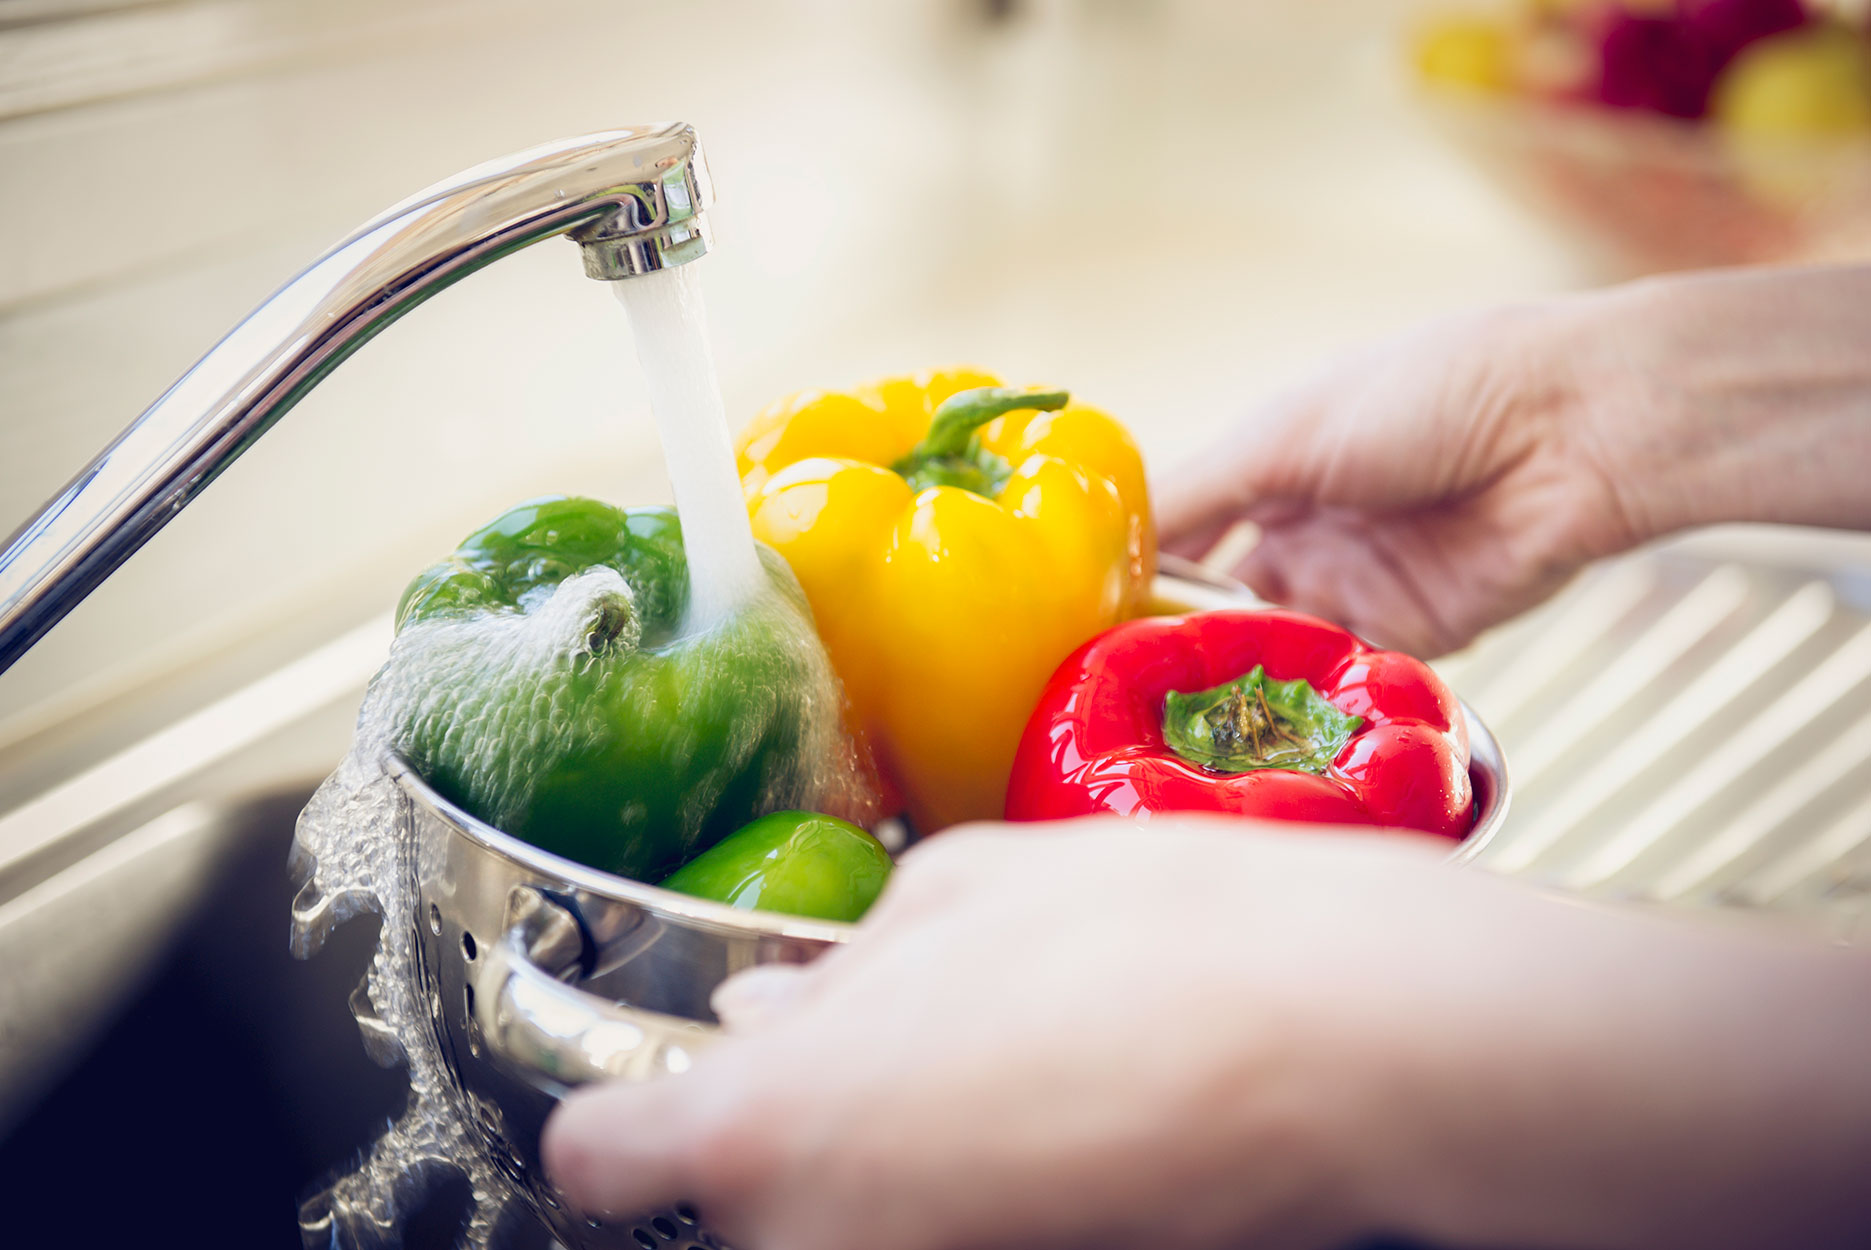 Hands of Hispanic woman rinsing peppers in sink